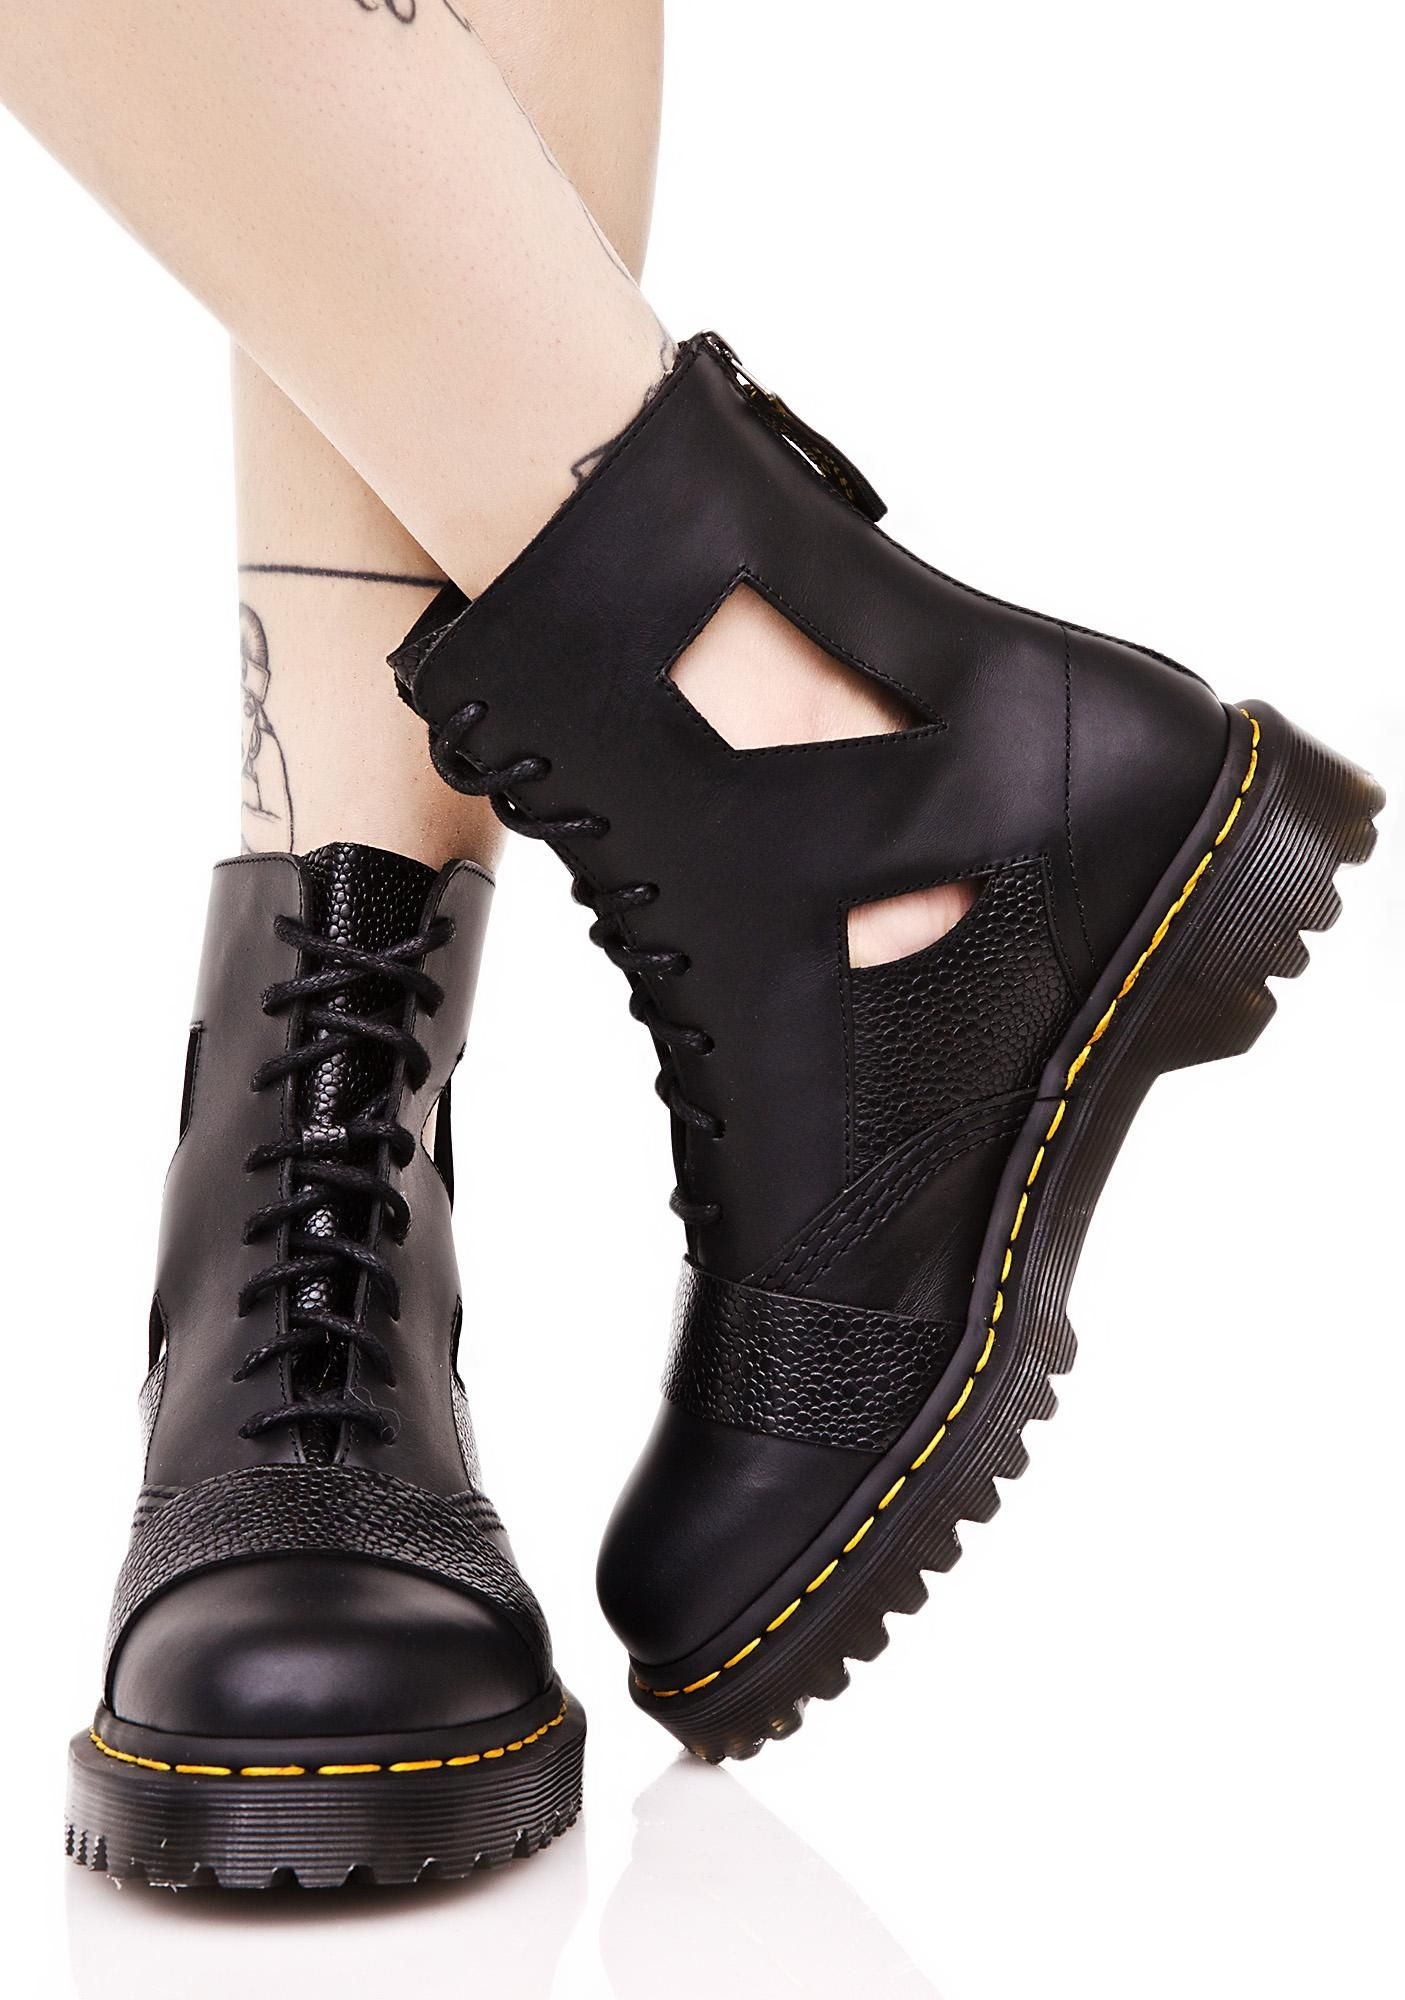 ab87f7d51bb Katrina Cut Out 8 Eye Boot | Wear | Boots, Shoes, Combat boots